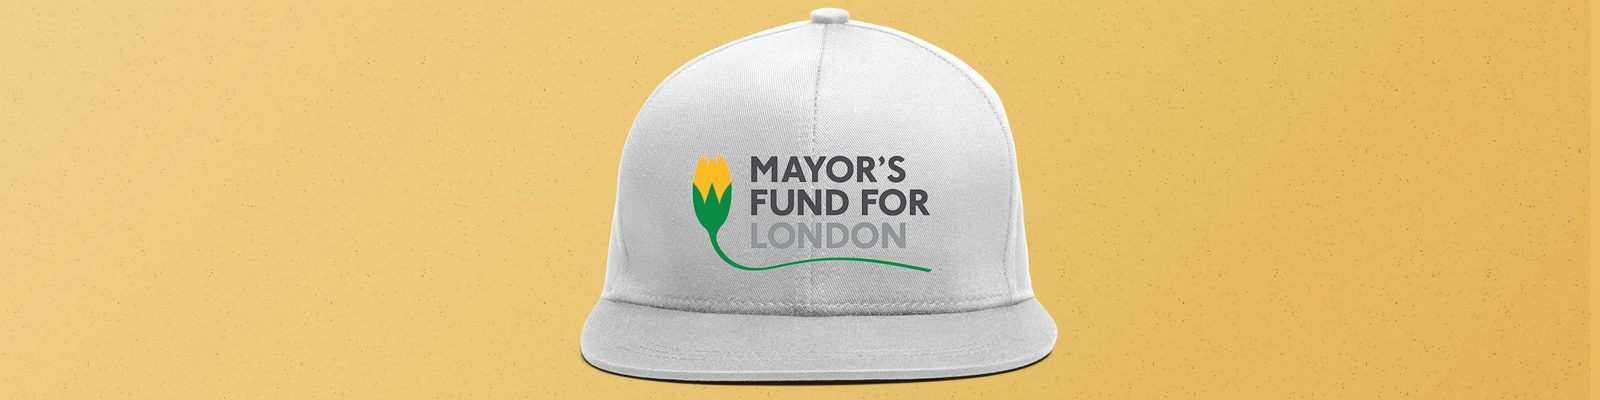 How Mayor's Fund For London Used Printed Caps at their Latest Event - Header Image